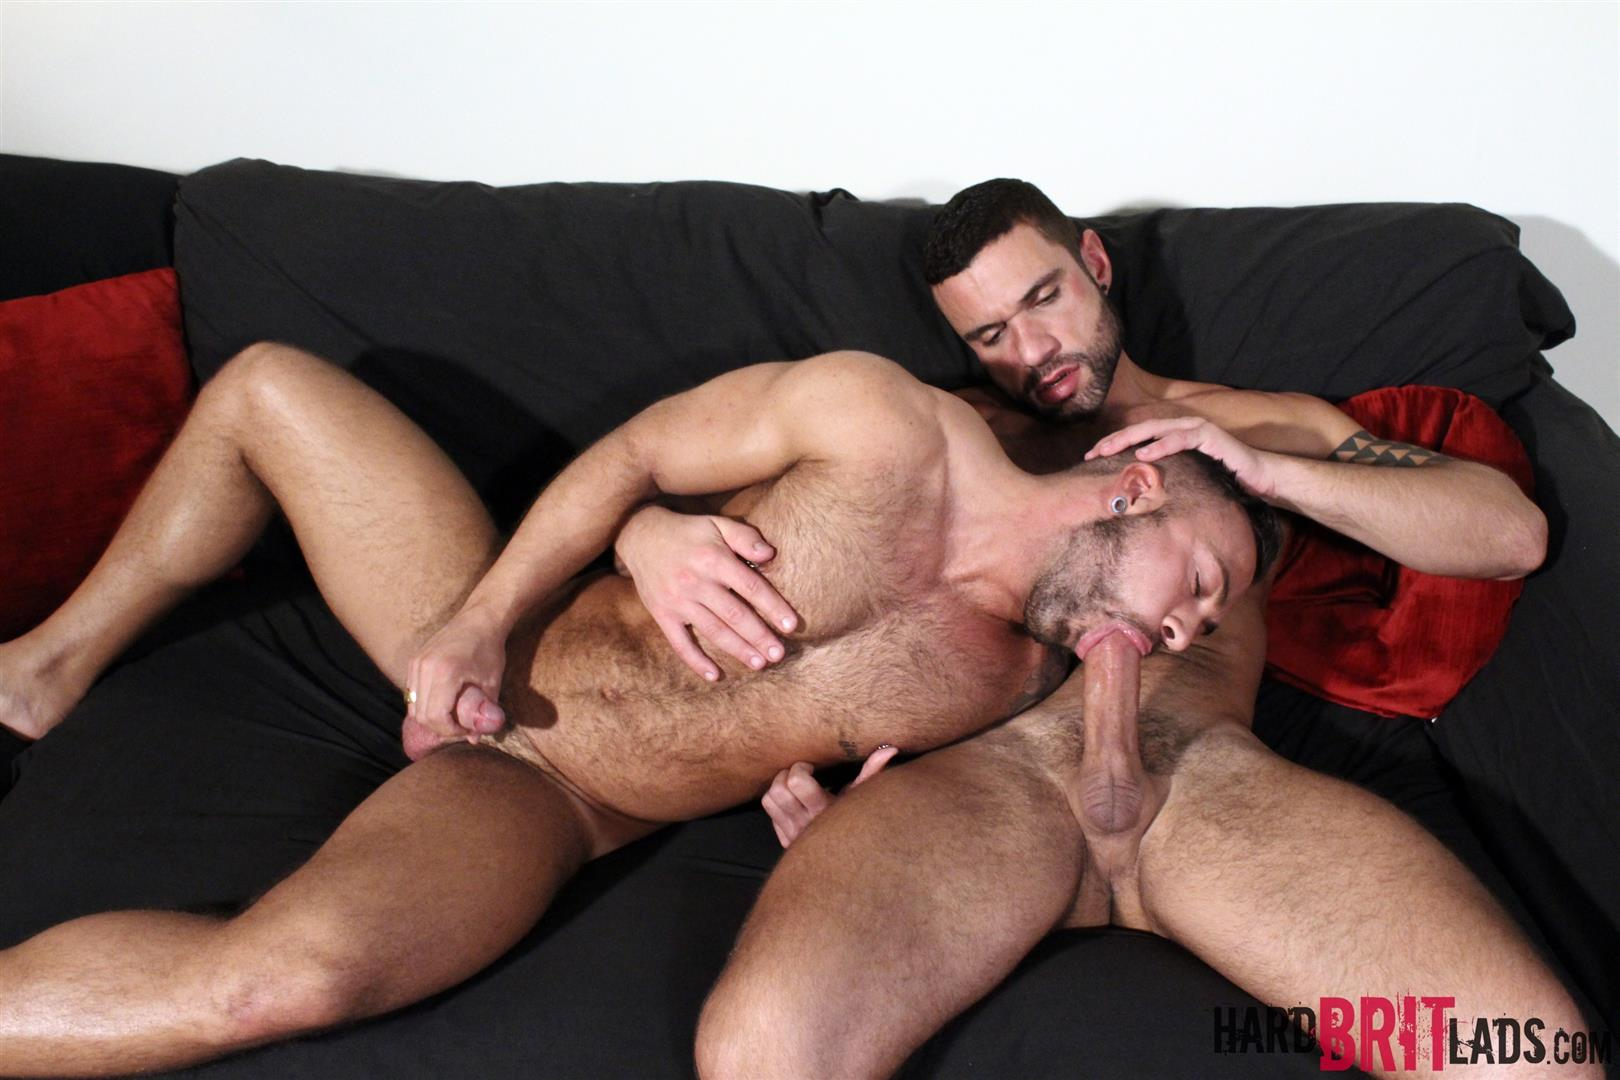 Hard-Brit-Lads-Sergi-Rodriguez-and-Letterio-Amadeo-Big-Uncut-Cock-Fucking-Amateur-Gay-Porn-12 Hairy British Muscle Hunks Fucking With Their Big Uncut Cocks